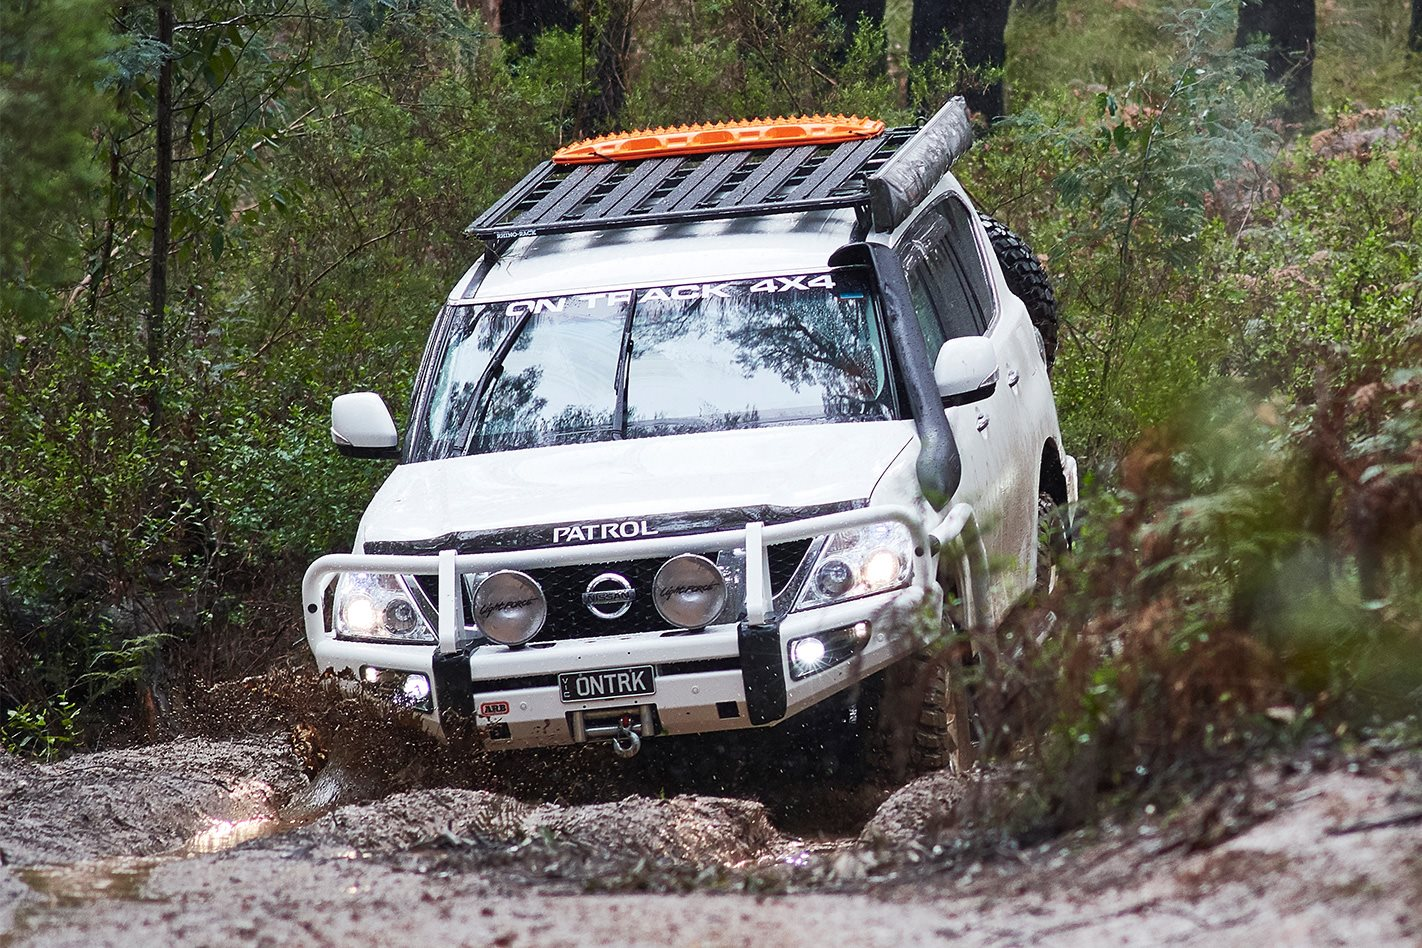 supercharged nissan patrol y62 custom 4x4 4x4 australia. Black Bedroom Furniture Sets. Home Design Ideas